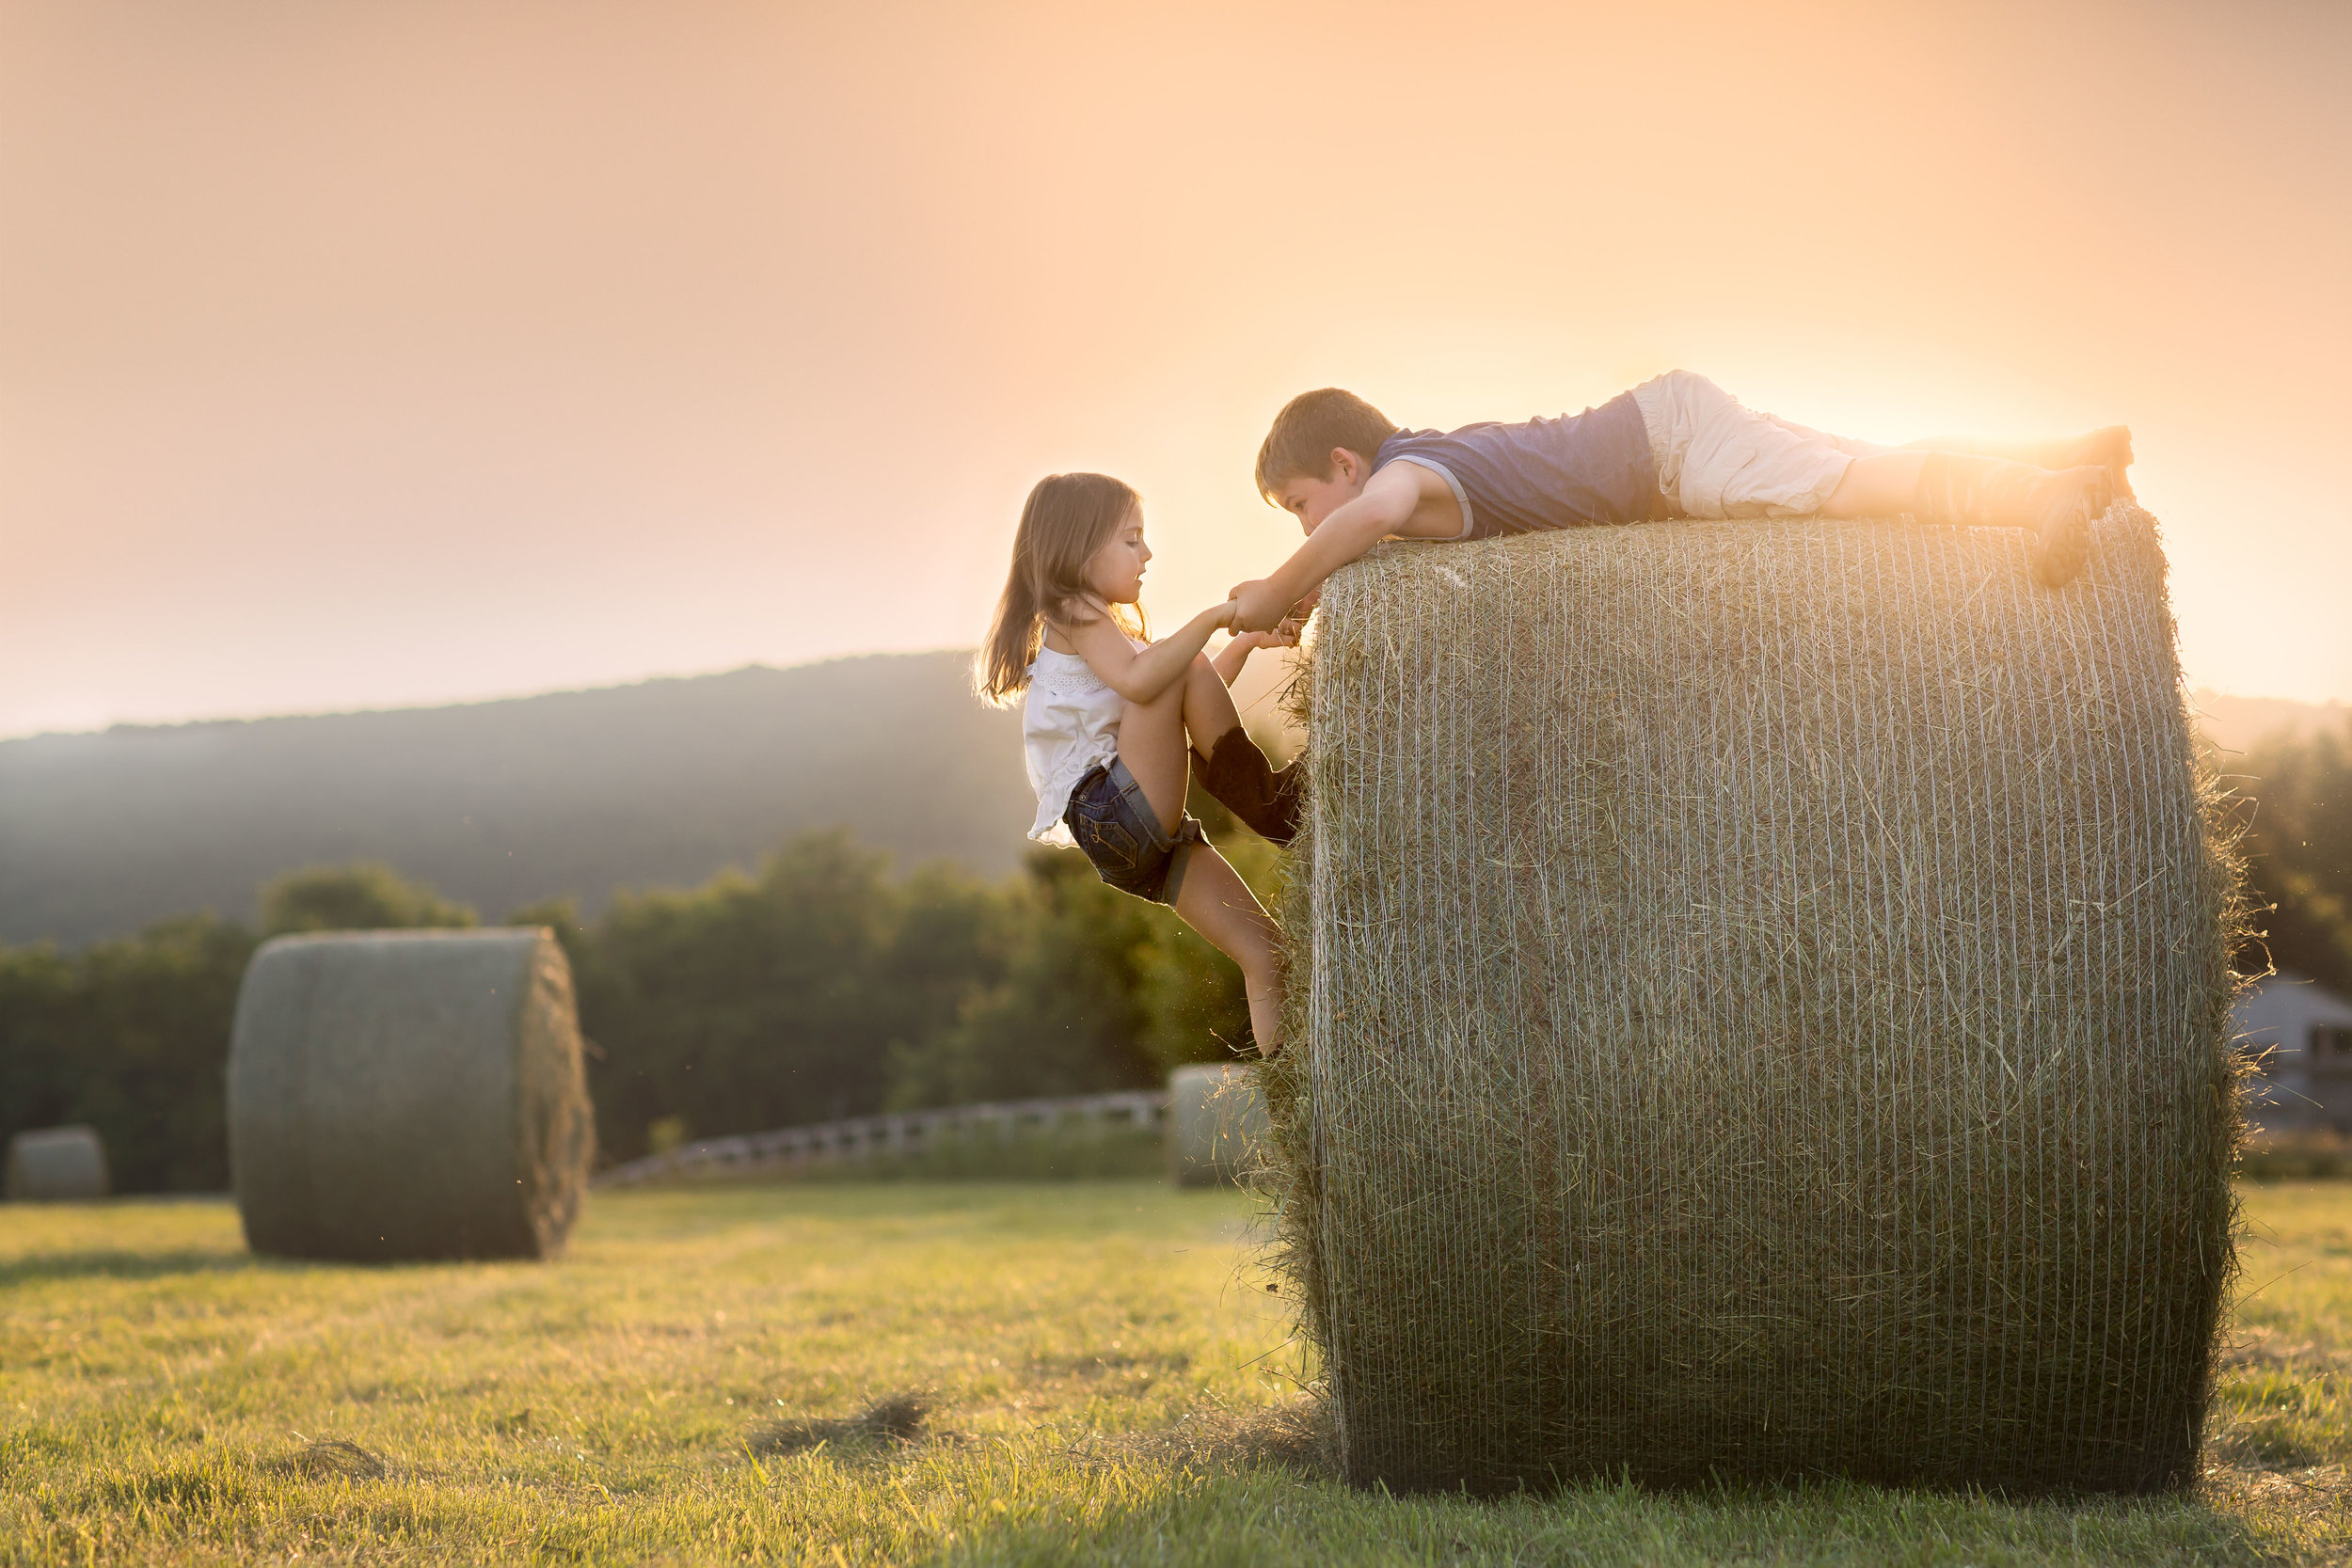 Photography of Children playing on hay bales in Frederick MD by Clare Ahalt Photography , a fine art photographer located in Frederick, MD specializing in child photography, senior portrait photographer and pet portraiture.